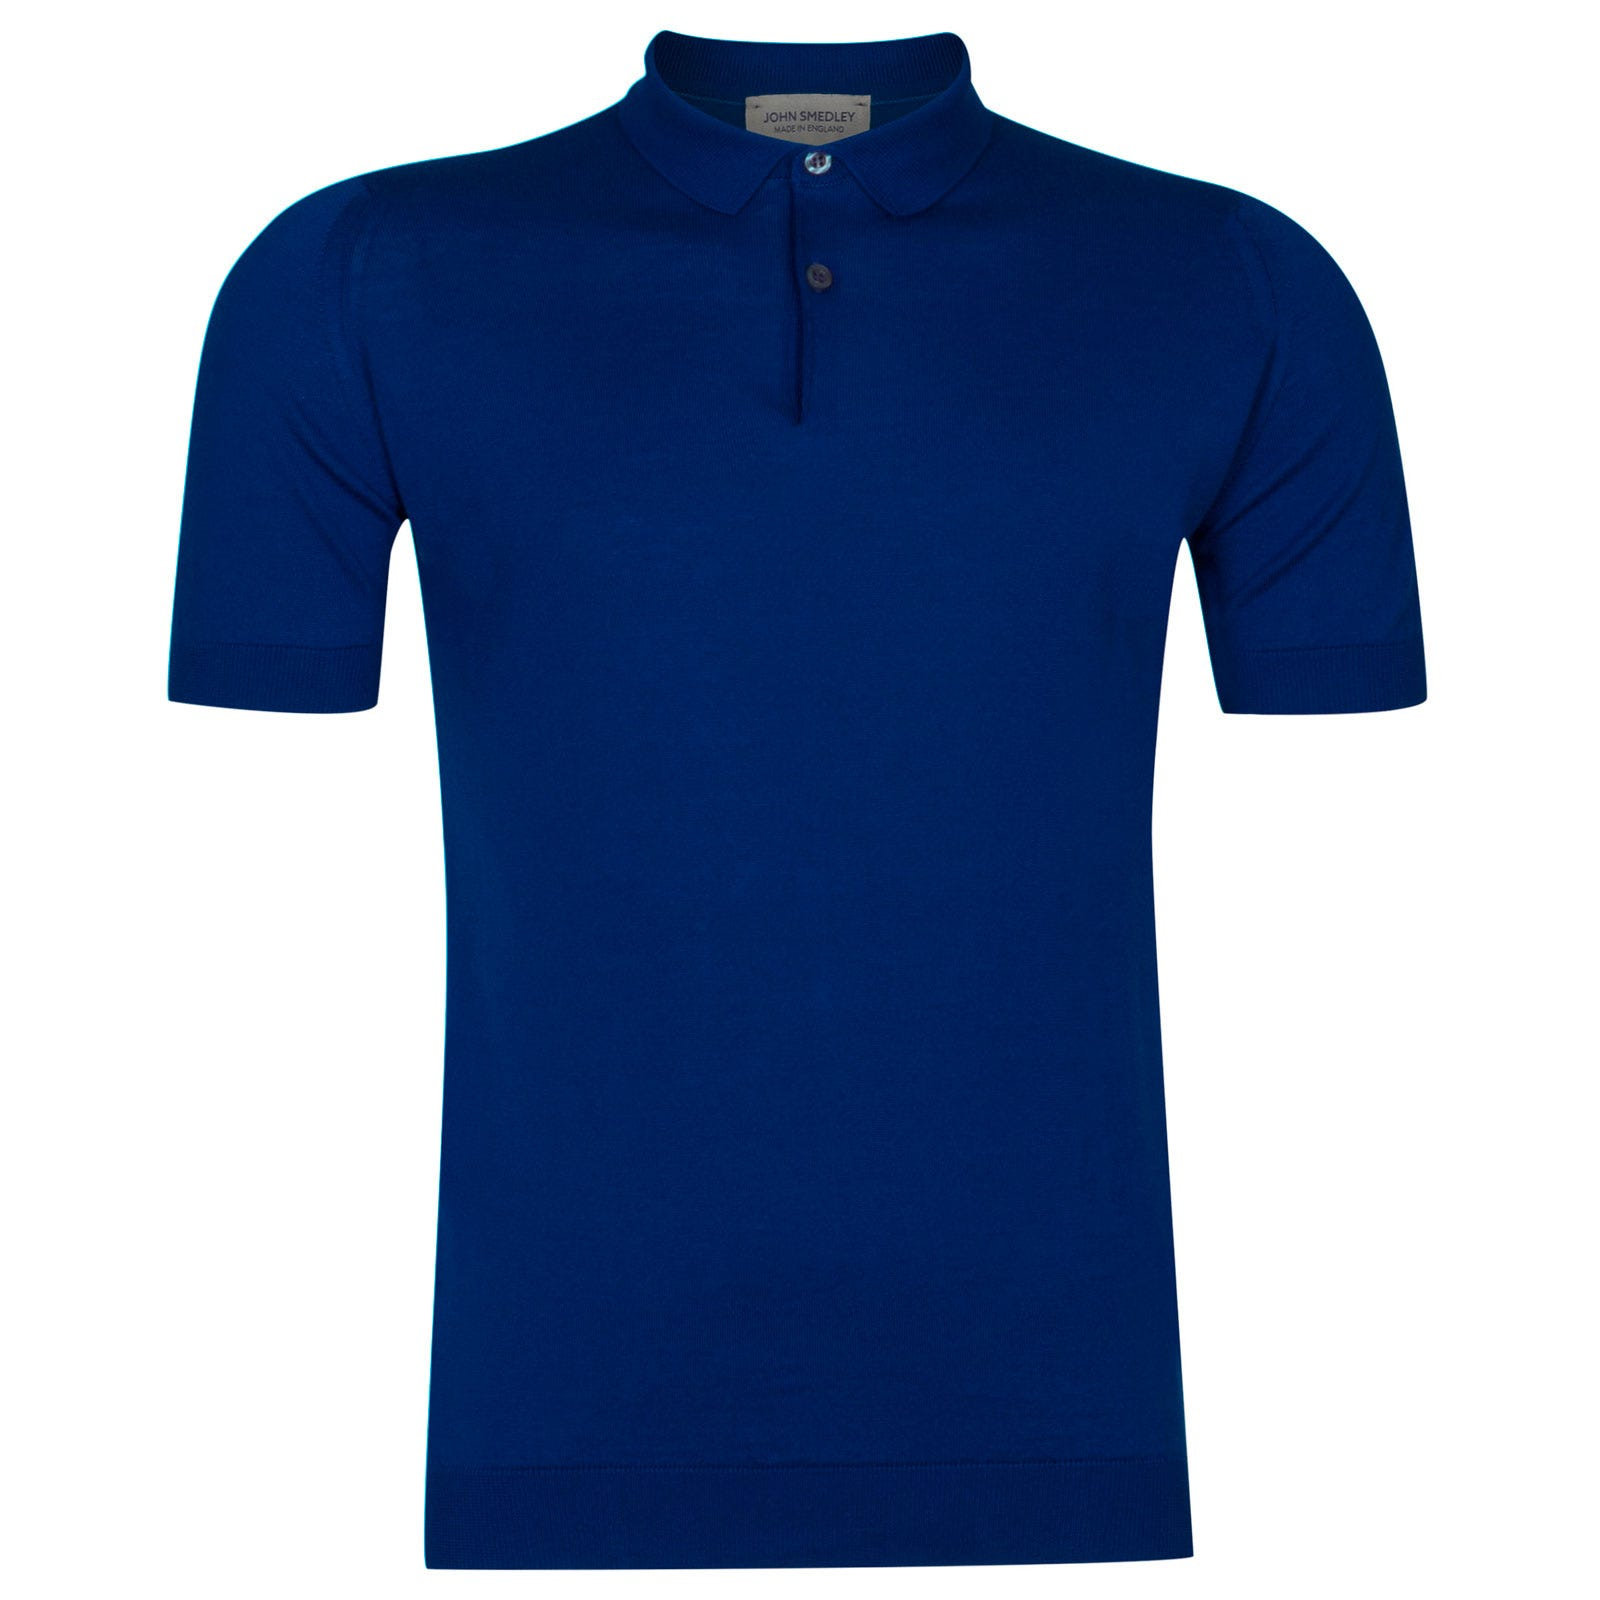 John Smedley rhodes Sea Island Cotton Shirt in Coniston Blue-S